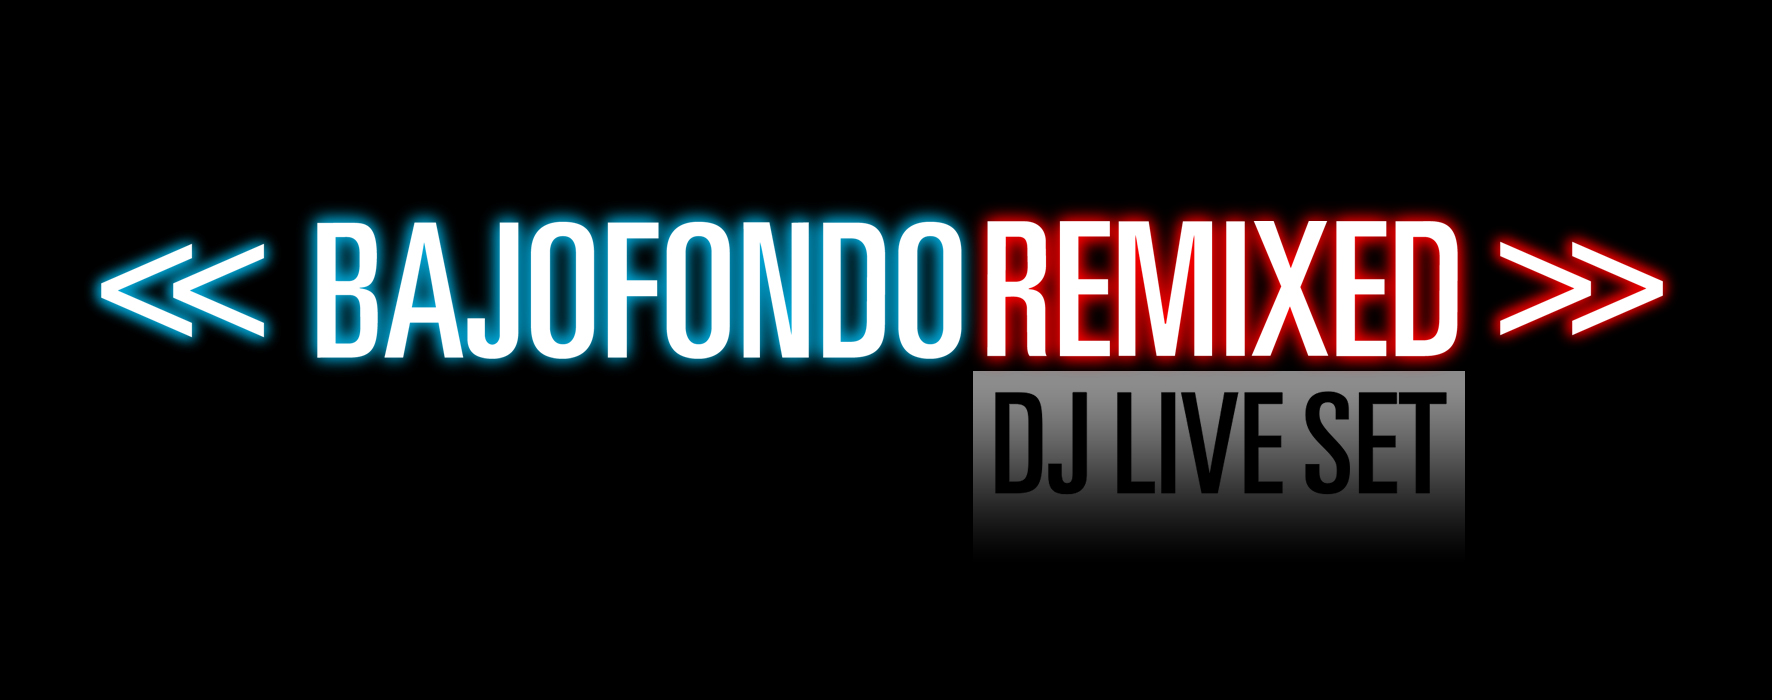 logo Bajofondo Remixed (DJ Live set)